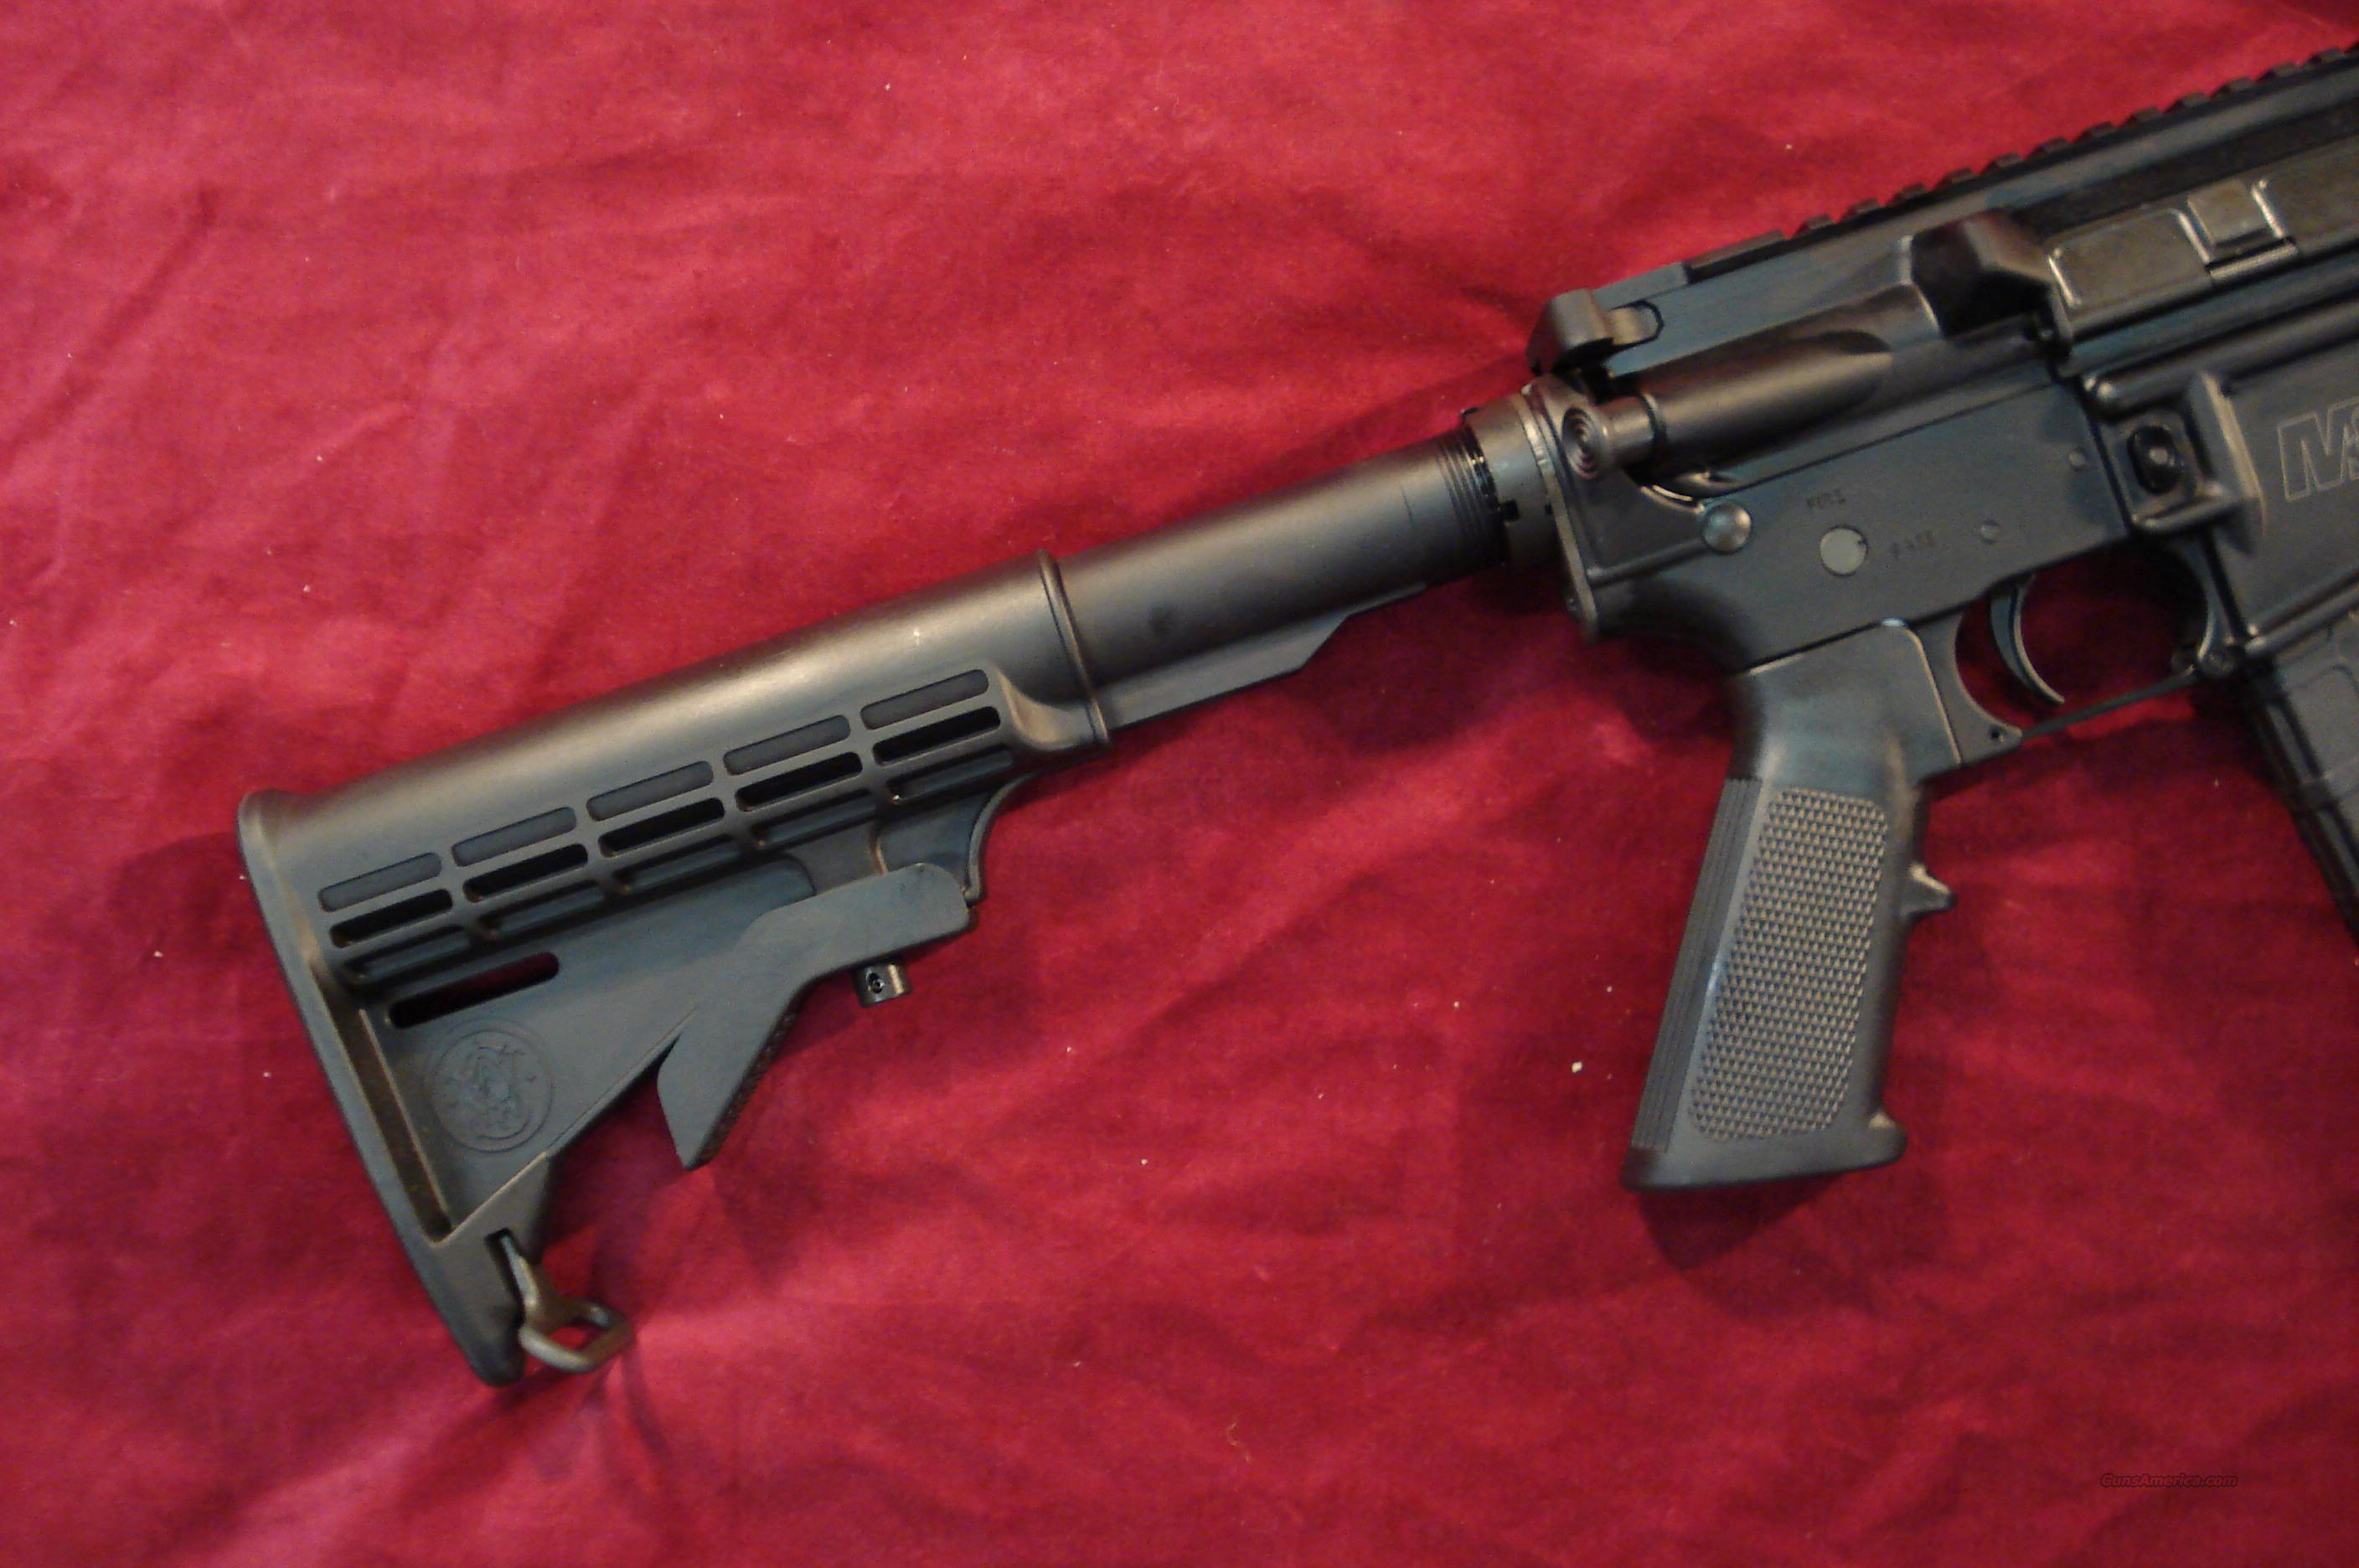 SMITH & WESSON M&P15OR ( OPTIC READY CARBINE) 223/5.56 CAL.NEW  Guns > Rifles > AR-15 Rifles - Small Manufacturers > Complete Rifle